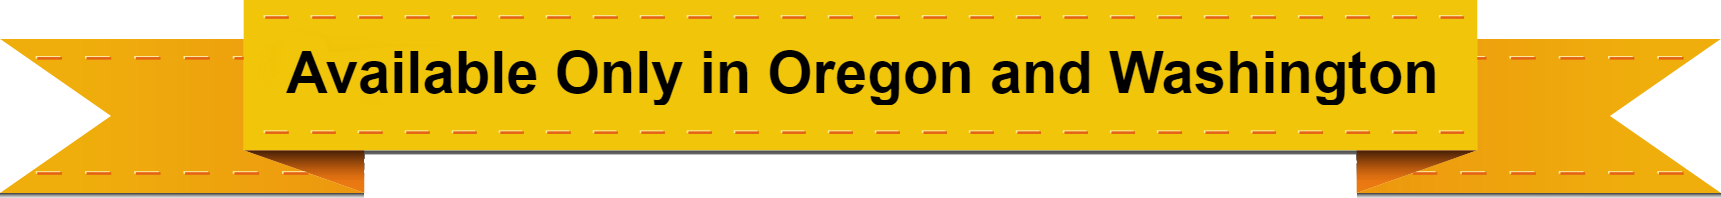 oregon and washington